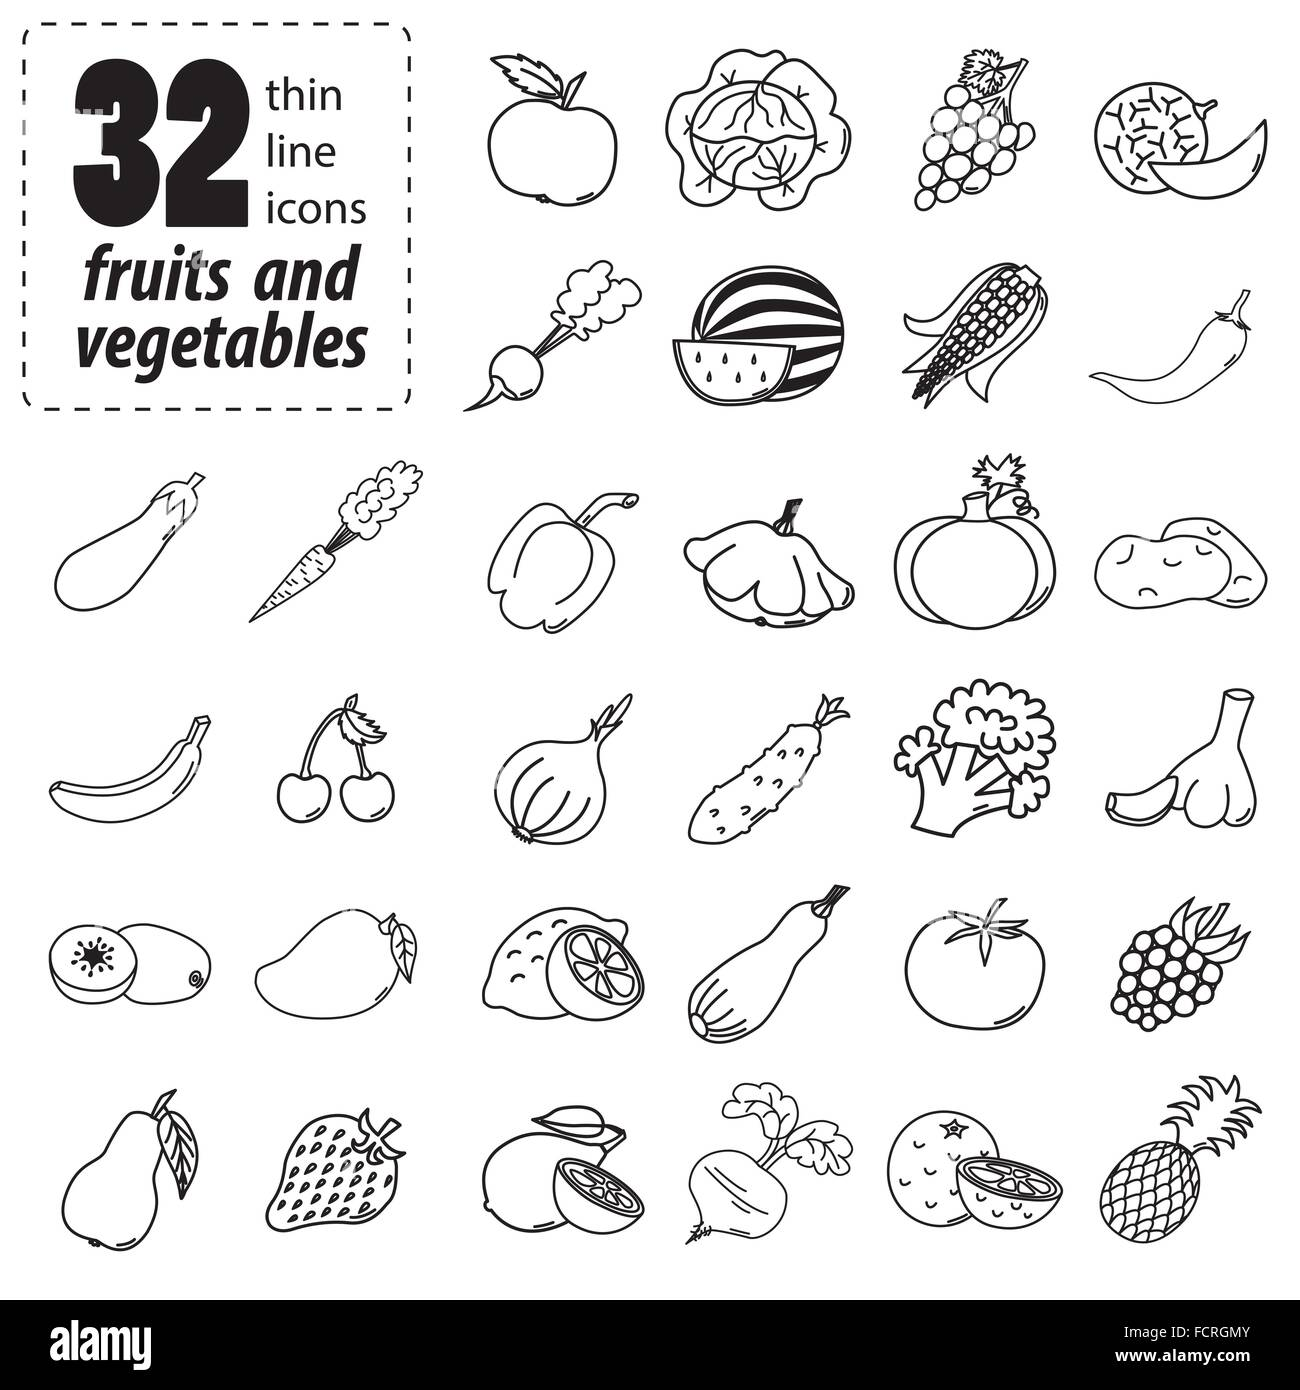 Thin line icons of fruits and vegetables - Stock Vector